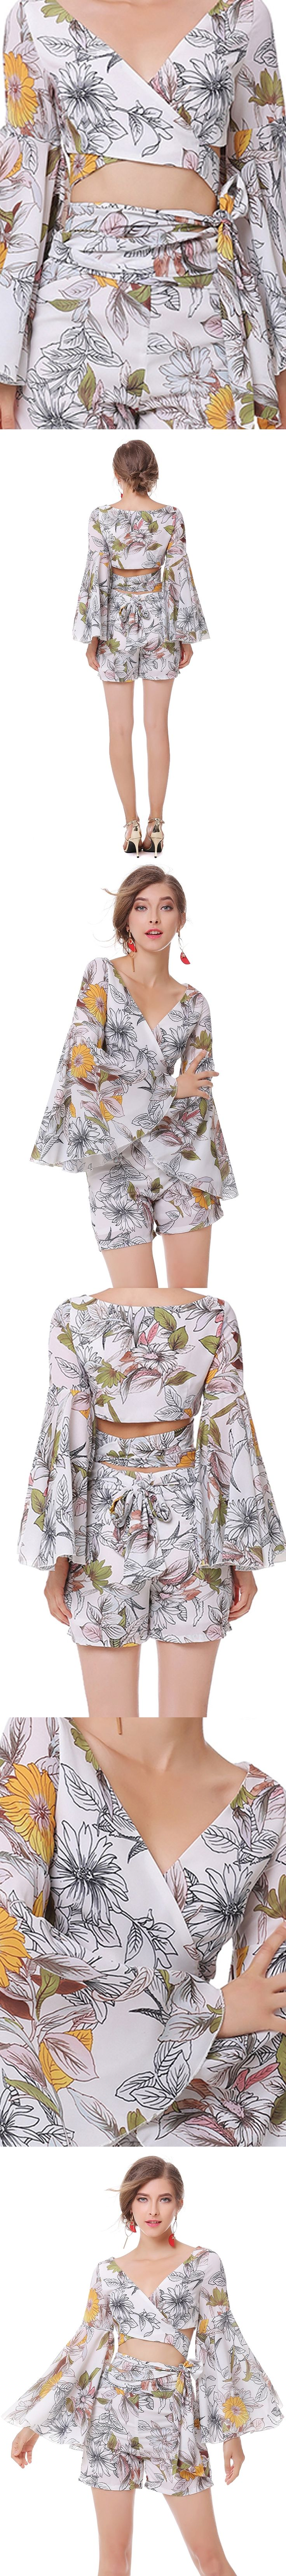 Timmiury Summer Women Floral Crop Tops+Shorts Chiffon Sexy Two Pieces Sets Boho Long Flare Sleeves Cropped Beach Suits